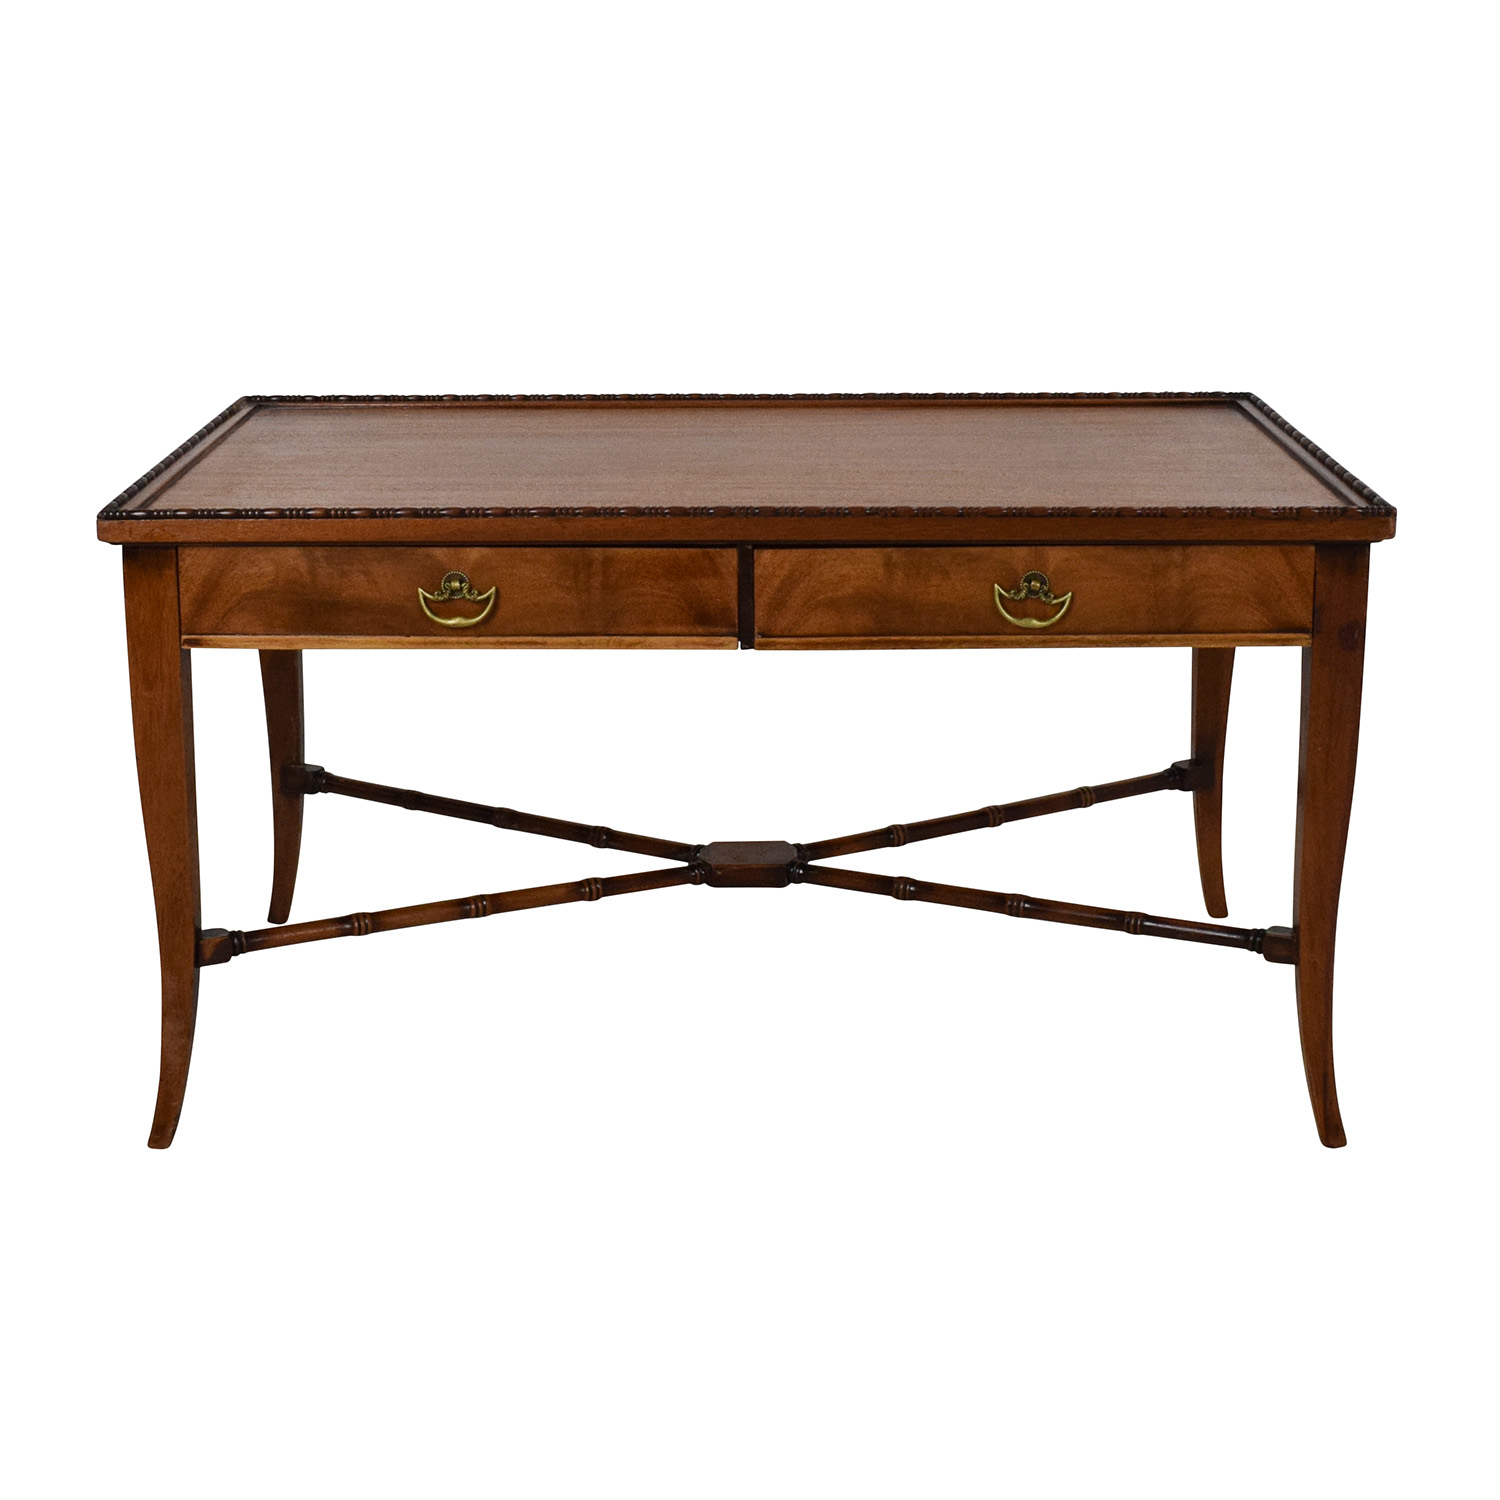 90 off vintage brass and glass coffee table tables for Grande table